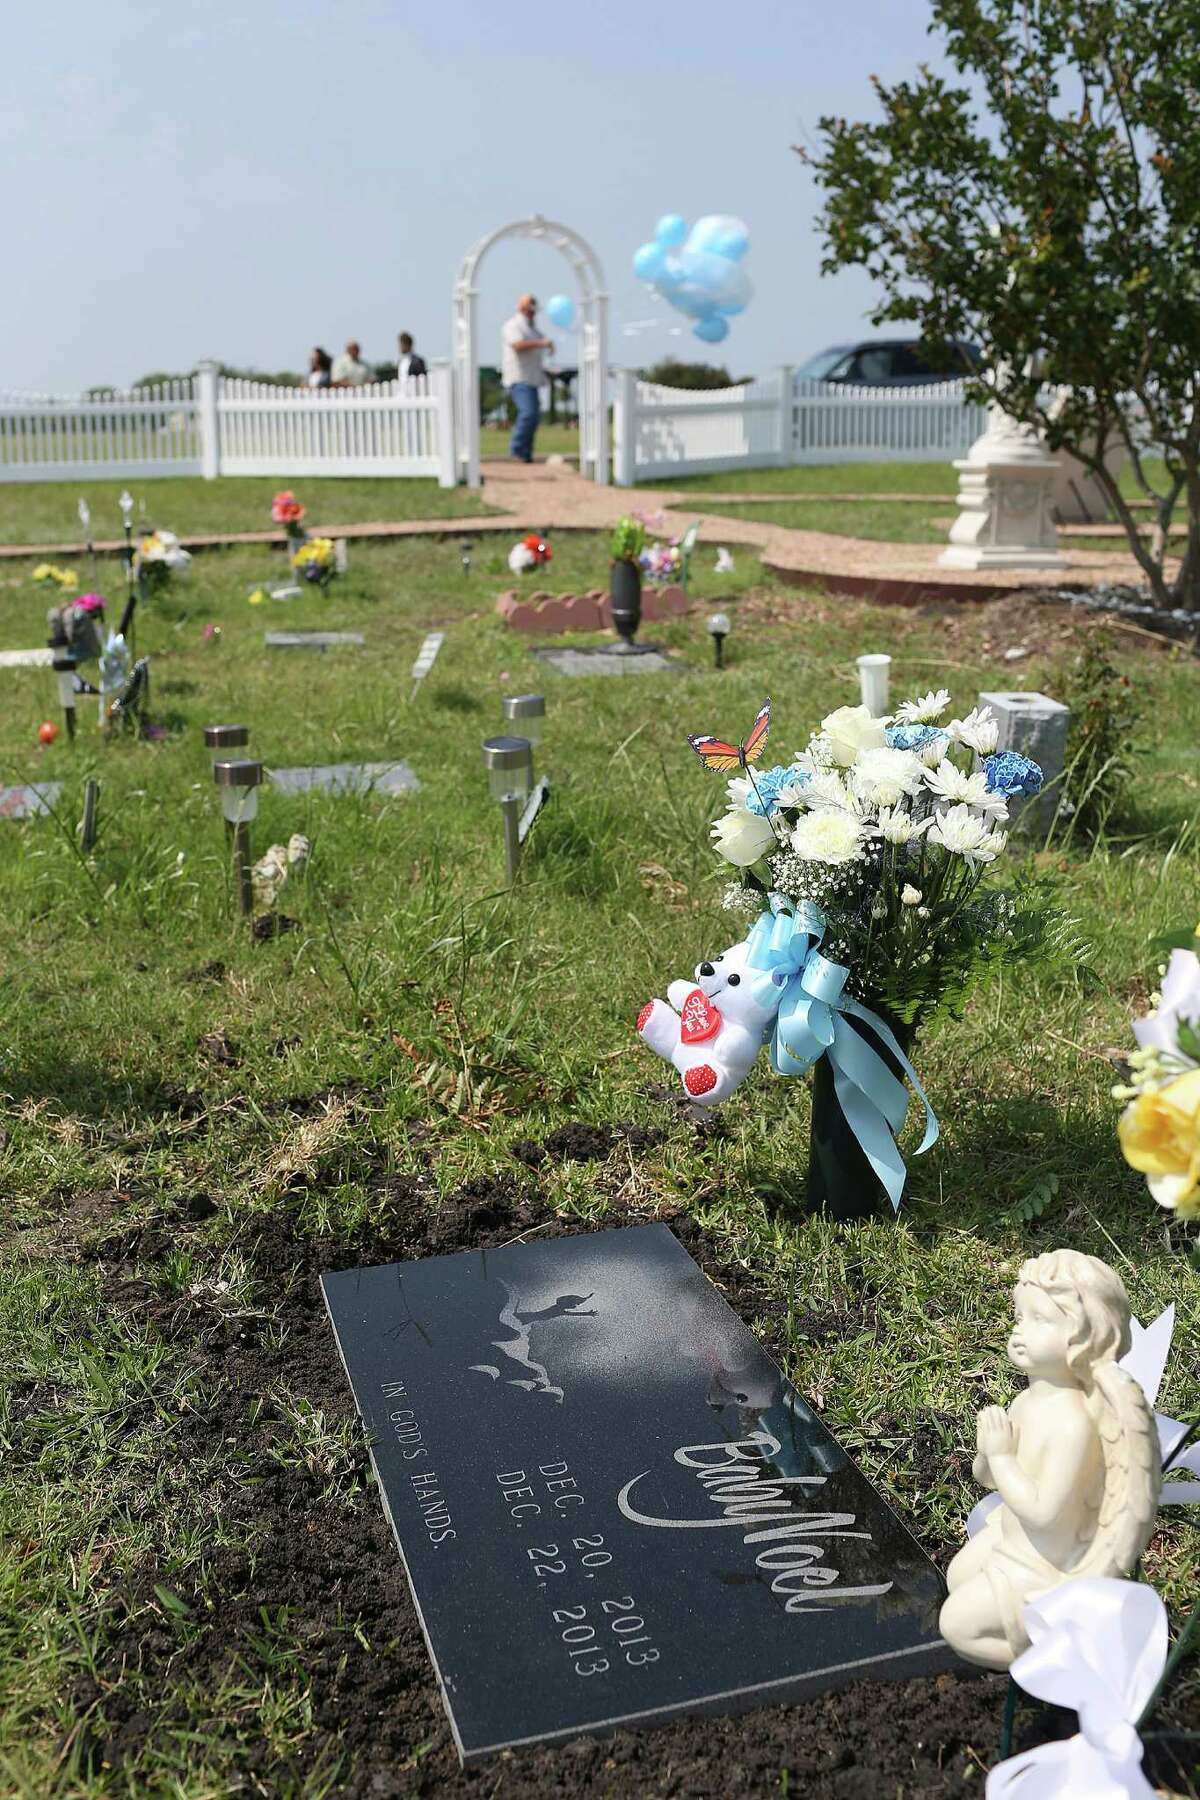 A headstone marks the spot of Baby Noel's burial site at the Chapel Hill Memorial Gardens, Wednesday, May 11, 2016. A service was held to place the headstone at the gravesite where he was buried on March 22, 2014. The body of the two-day-old baby was in a duffle bag when it was found by a Waste Management employee at the San Antonio Houston Street Recycle Center located in the 5600 block of FM 1346 in December of 2014. The mother of the baby boy, Nidia Yolibeth Alvarado, is suspected of strangling the baby because she didn't want another child and now faces capital murder charges. Tim and Pamela Allen adopted the Baby Noel in order to legally bury the baby. Pamela Allen noted that the service wasn't just about placing a headstone on the grave but also